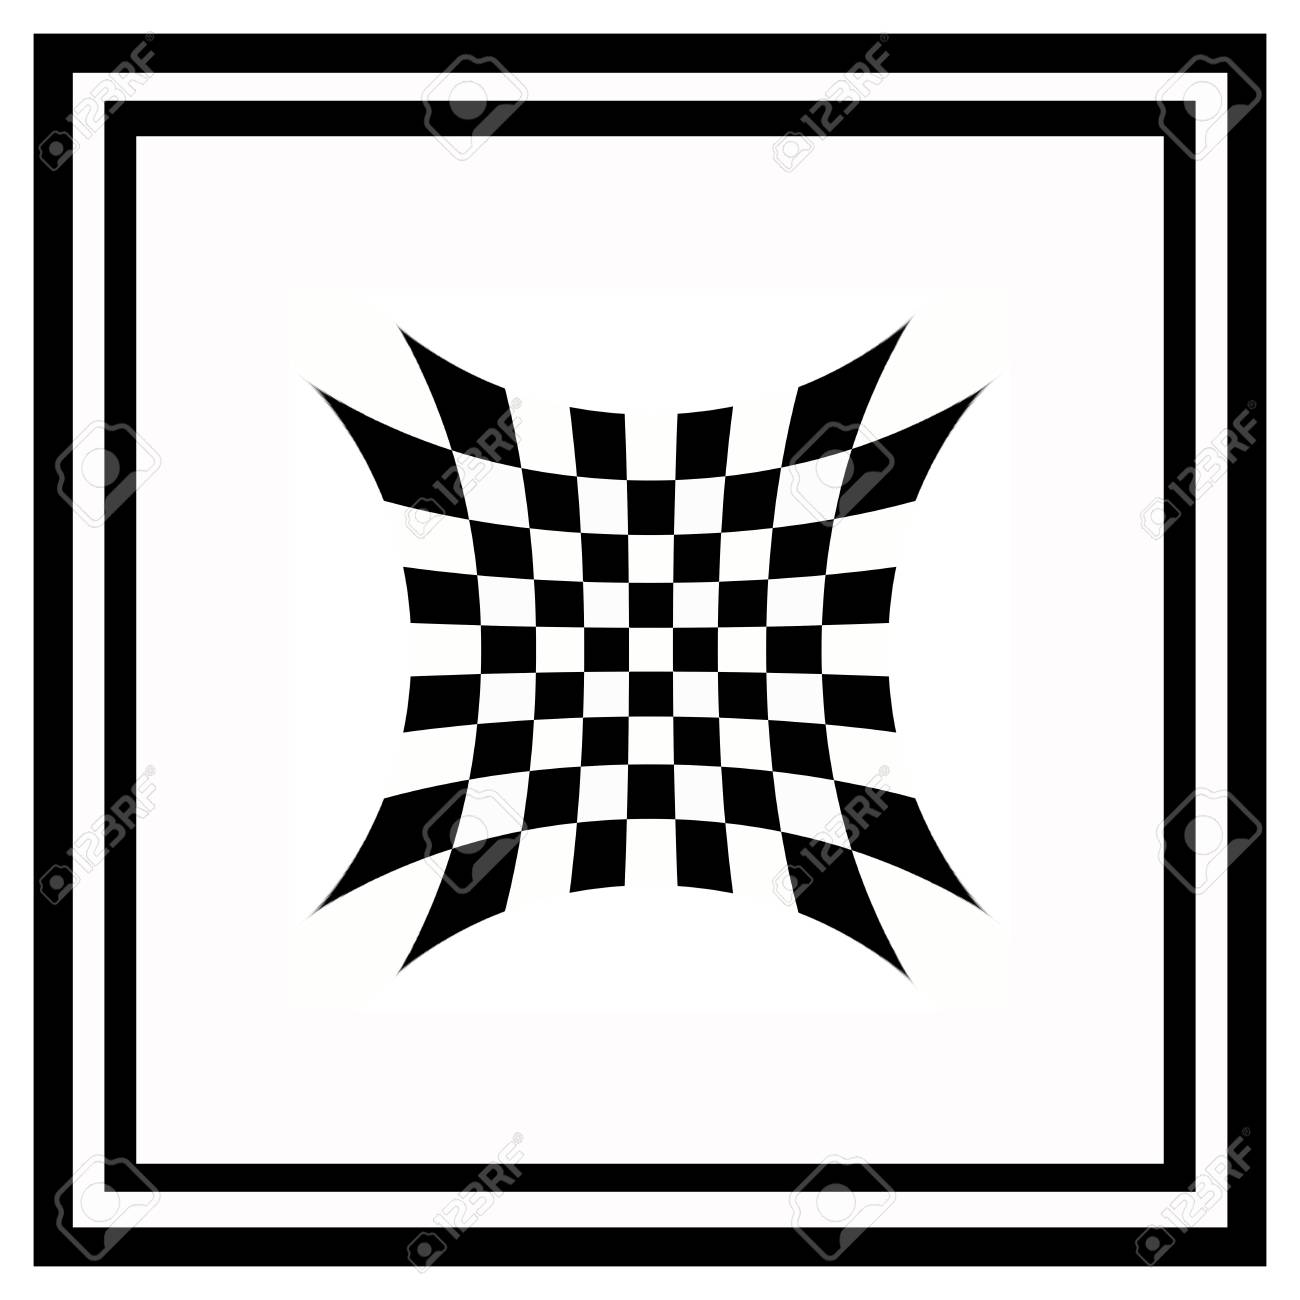 Black And White Checkered Abstract Background With Frame Stock Photo